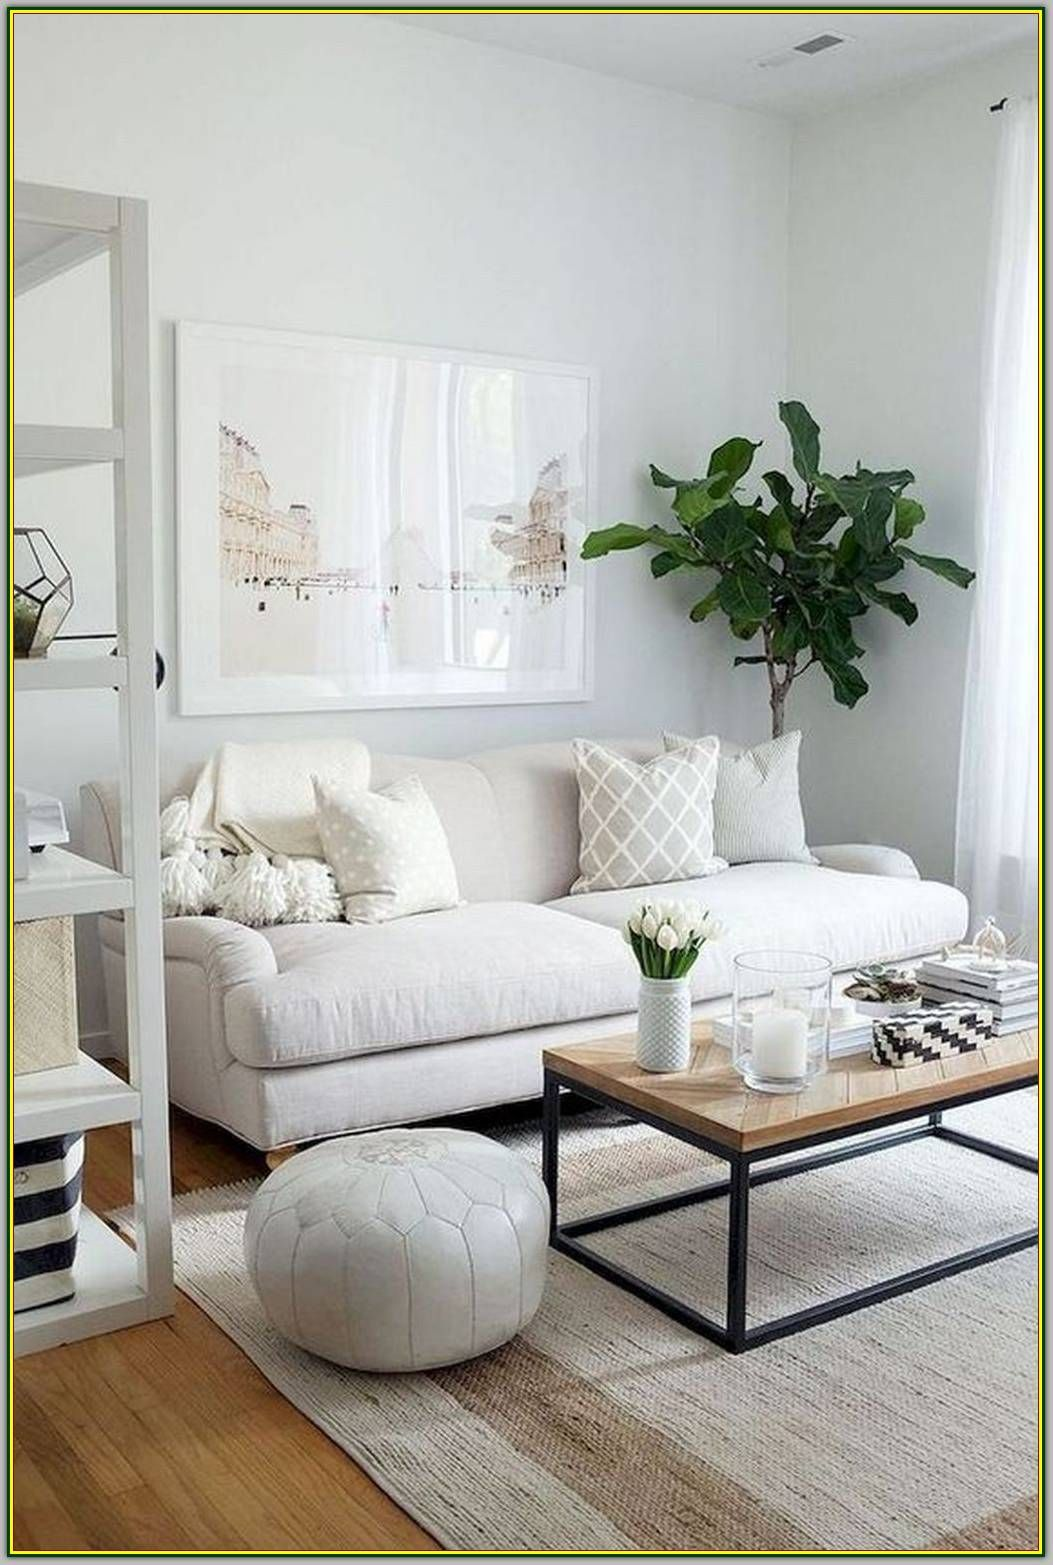 Living Room Interior Design Everyone Can Find Benefit From Modern Interior Design Small Living Room Decor Small Apartment Decorating Living Room Living Room Decor Apartment Living room decor ideas